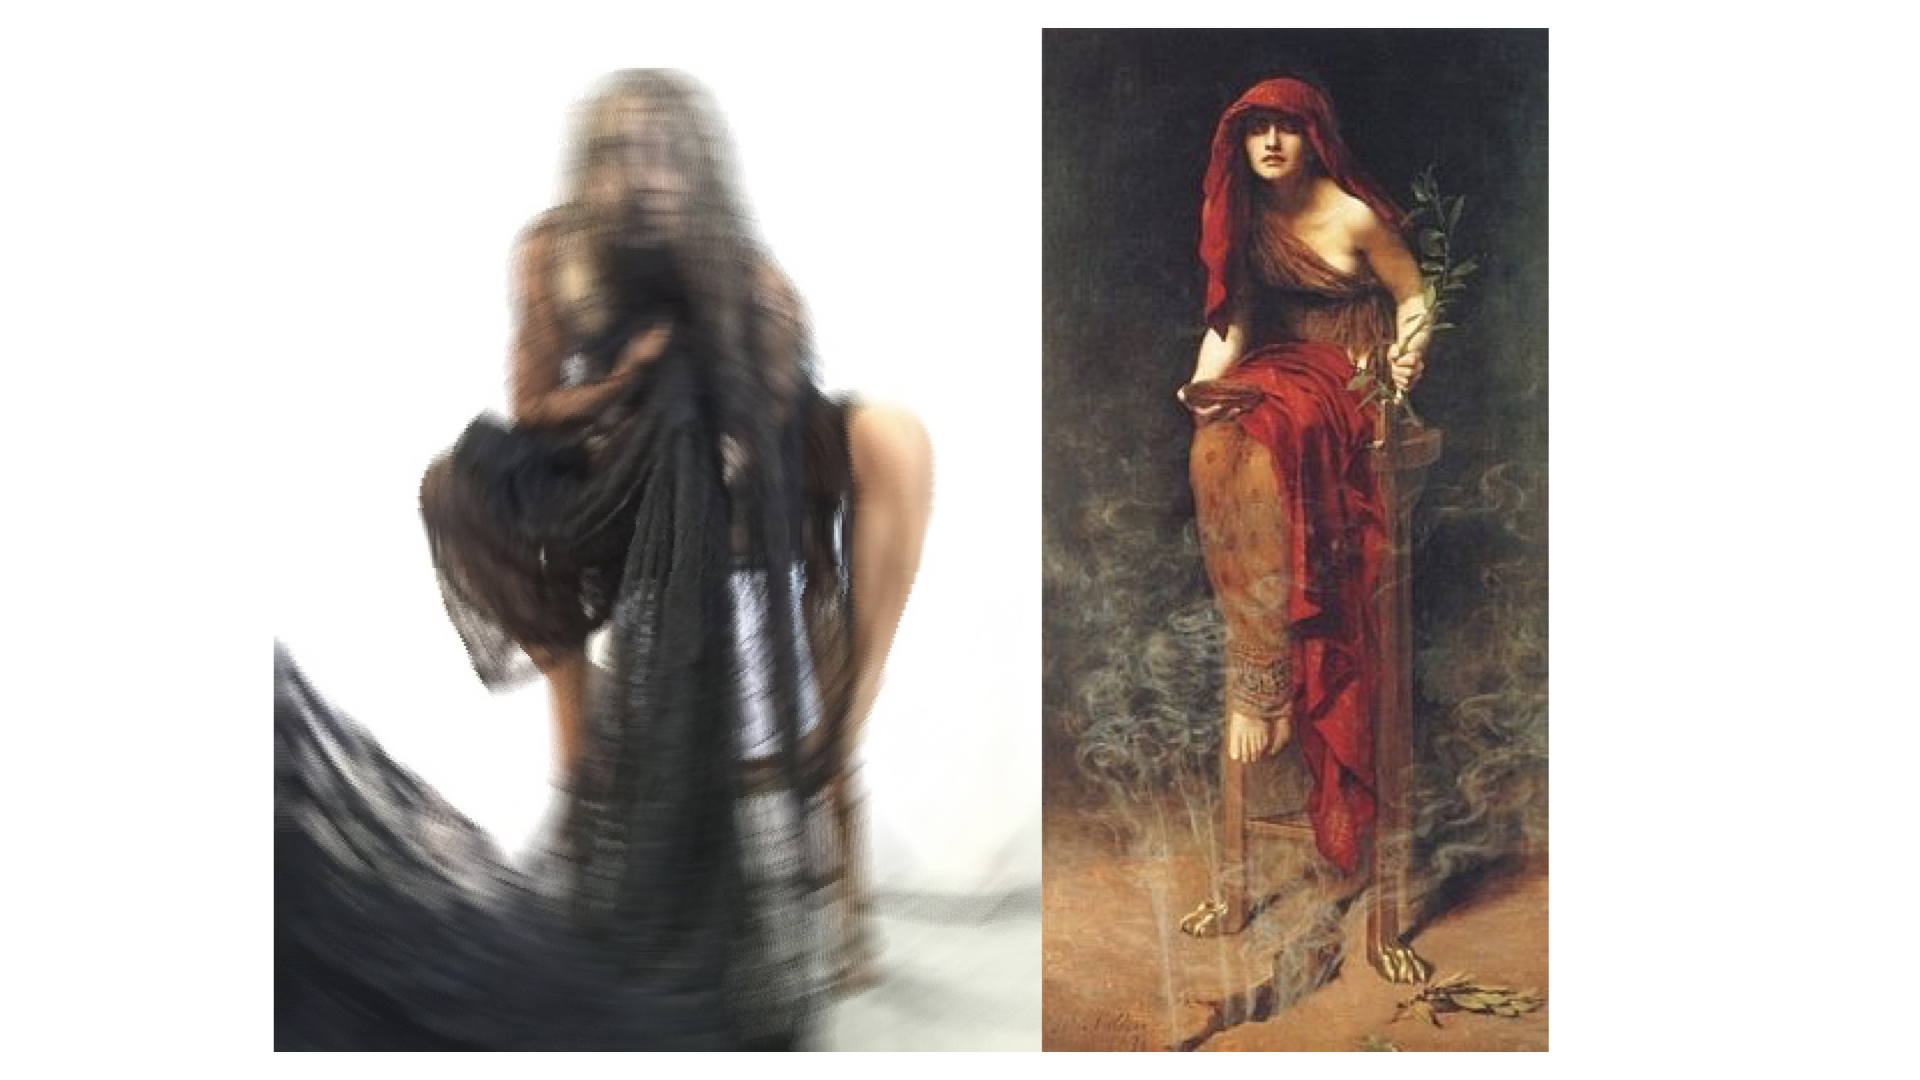 IMAGE Left: Nox from A Wandering Mind and her InnerNet ; Right: The Oracle from Greek legends